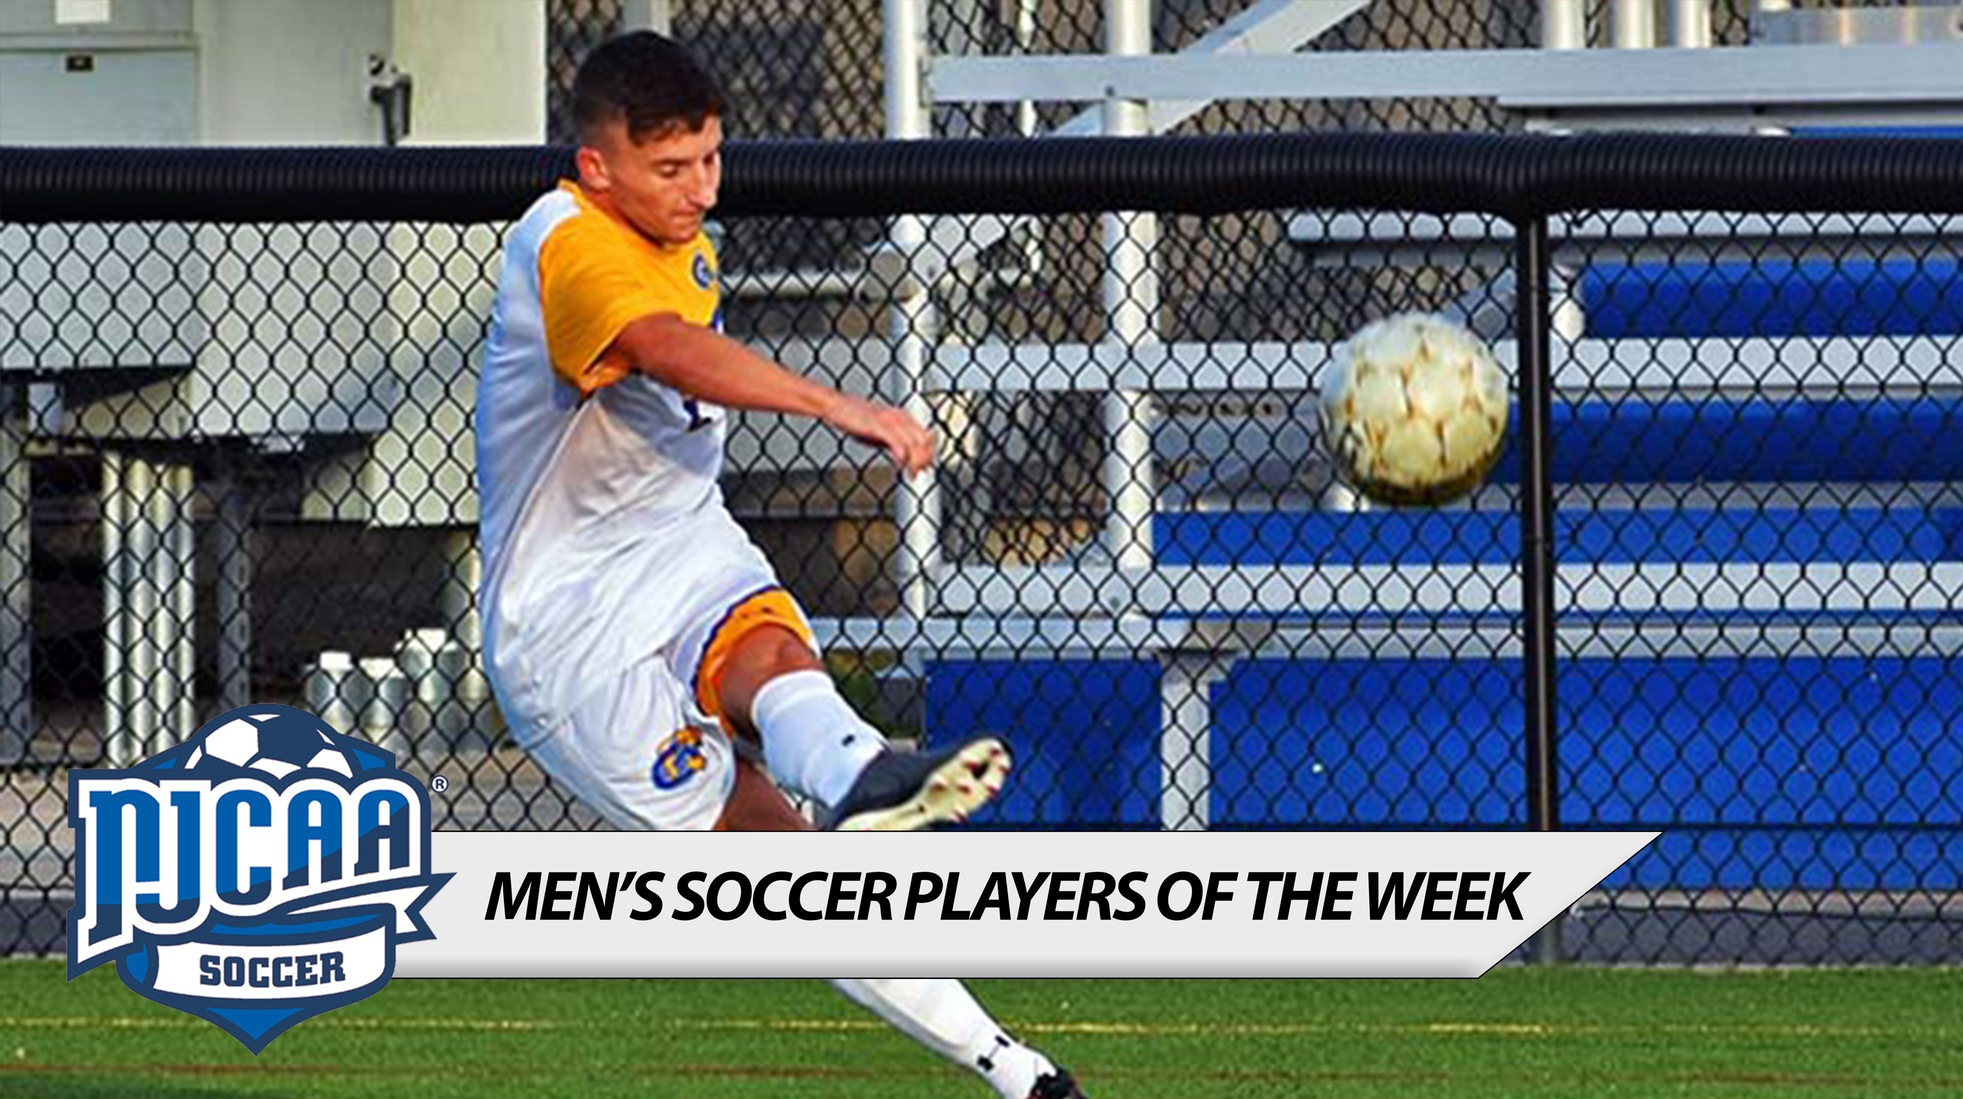 Men's Soccer Players of the Week - (Oct. 23-29)